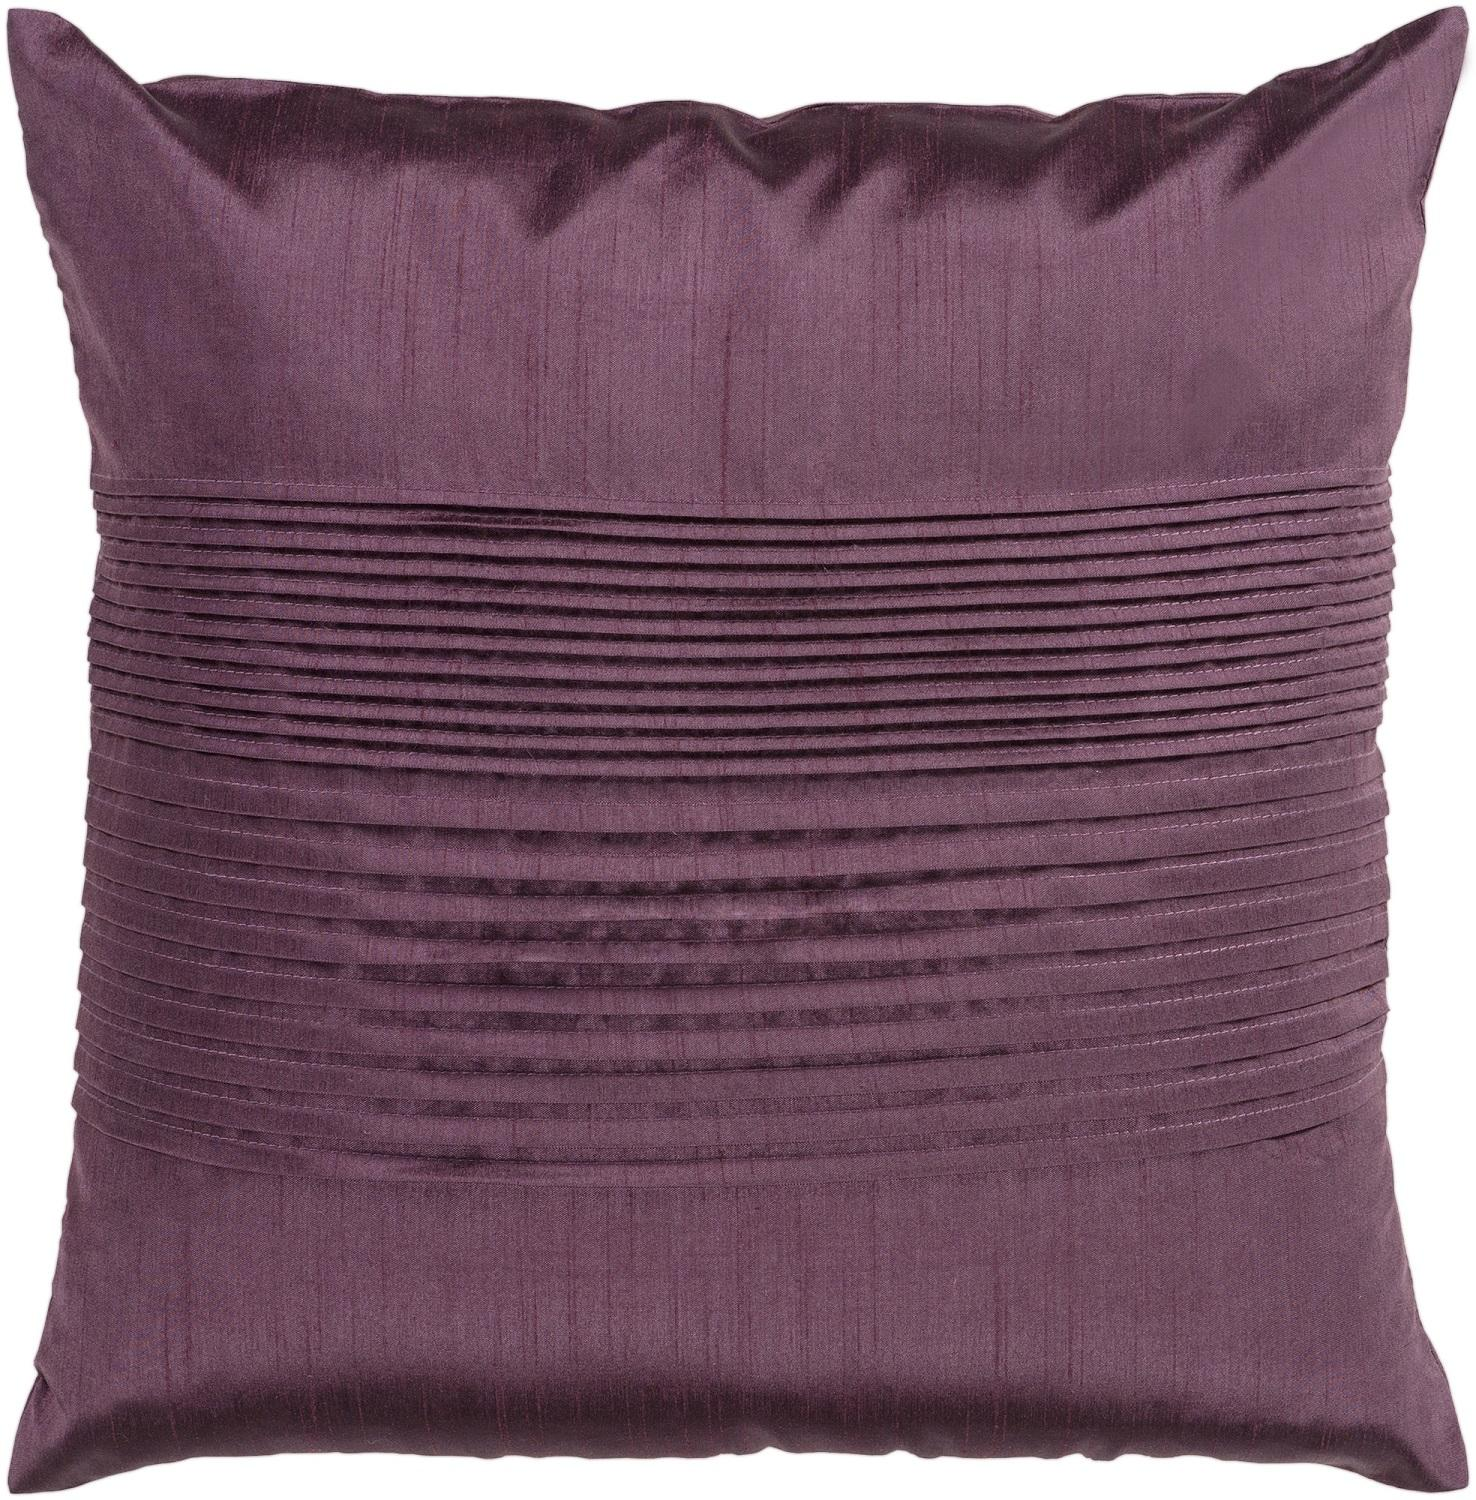 "18"" Rhubarb Purple Tuxedo Pleats Decorative Throw Pillow – Down Filler"